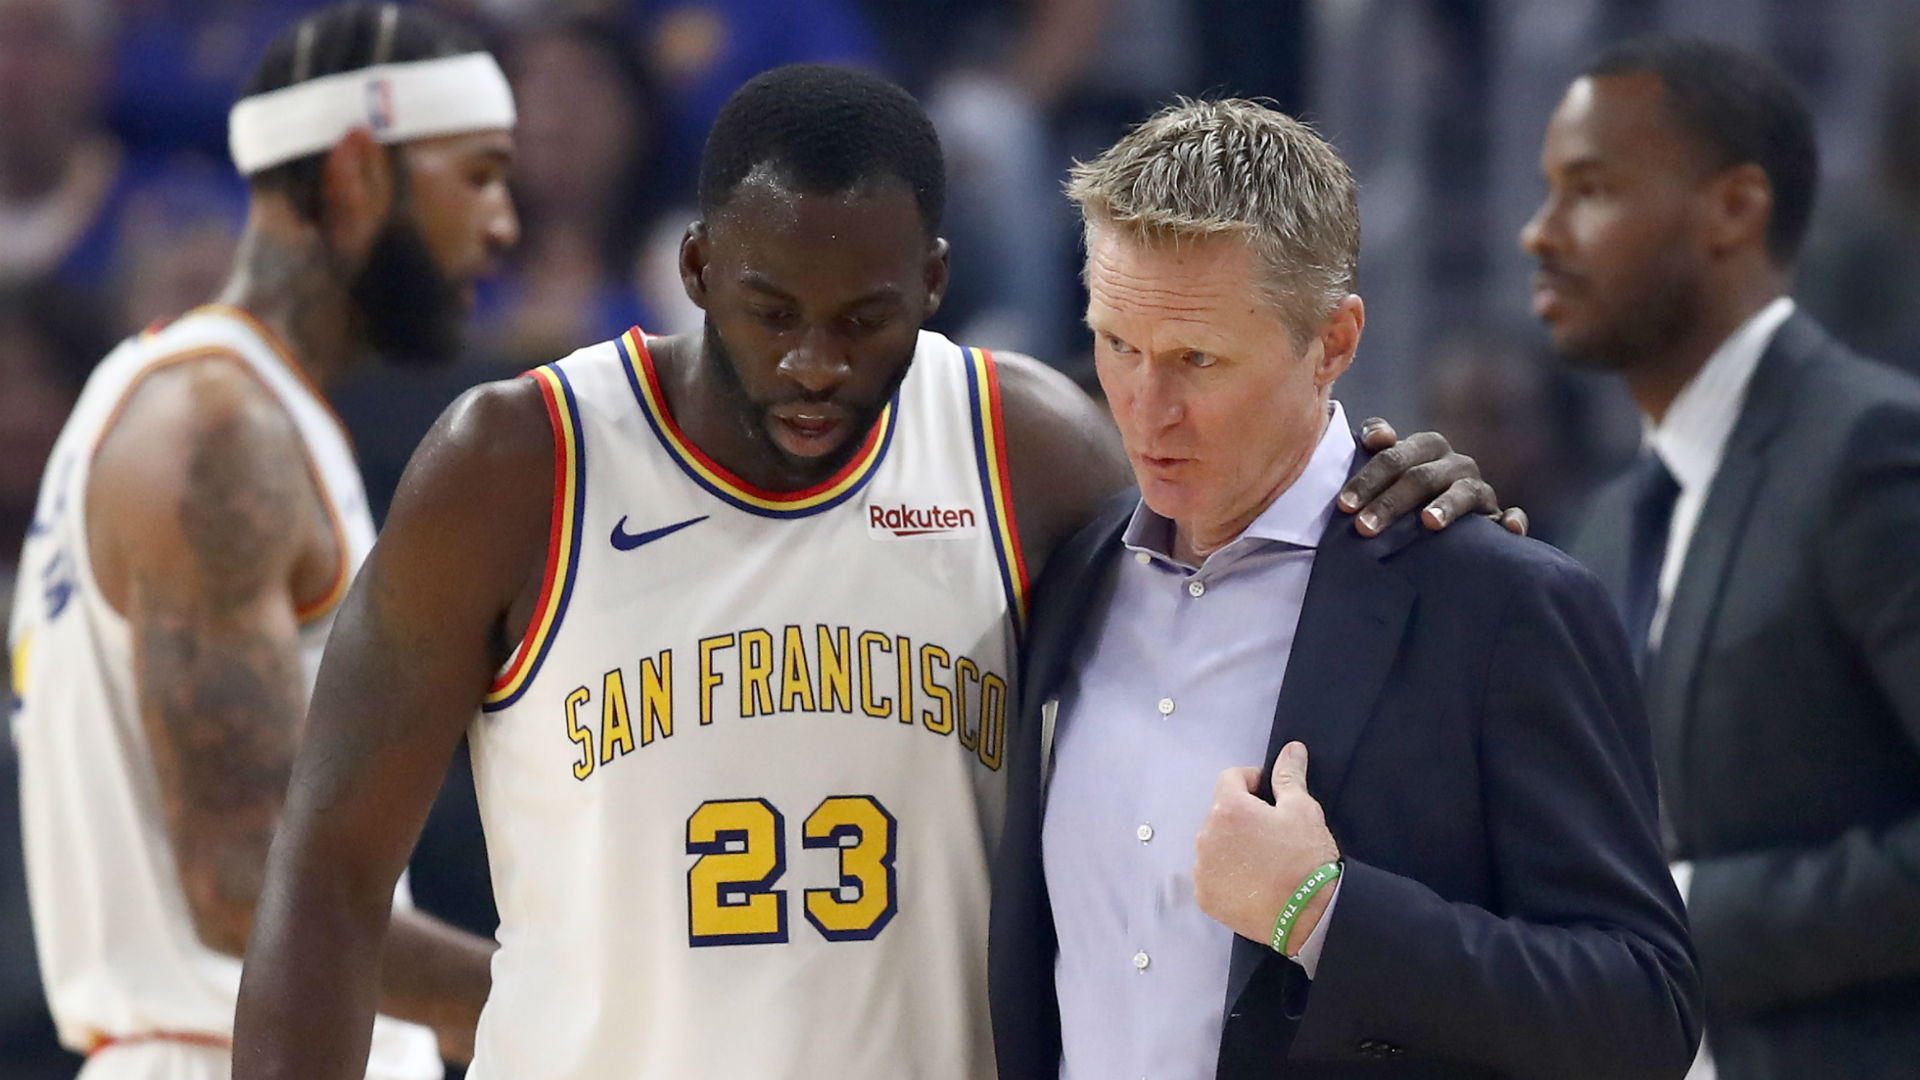 The Golden State Warriors snapped a seven-game losing streak by beating the Memphis Grizzlies, earning warm praise from coach Steve Kerr.